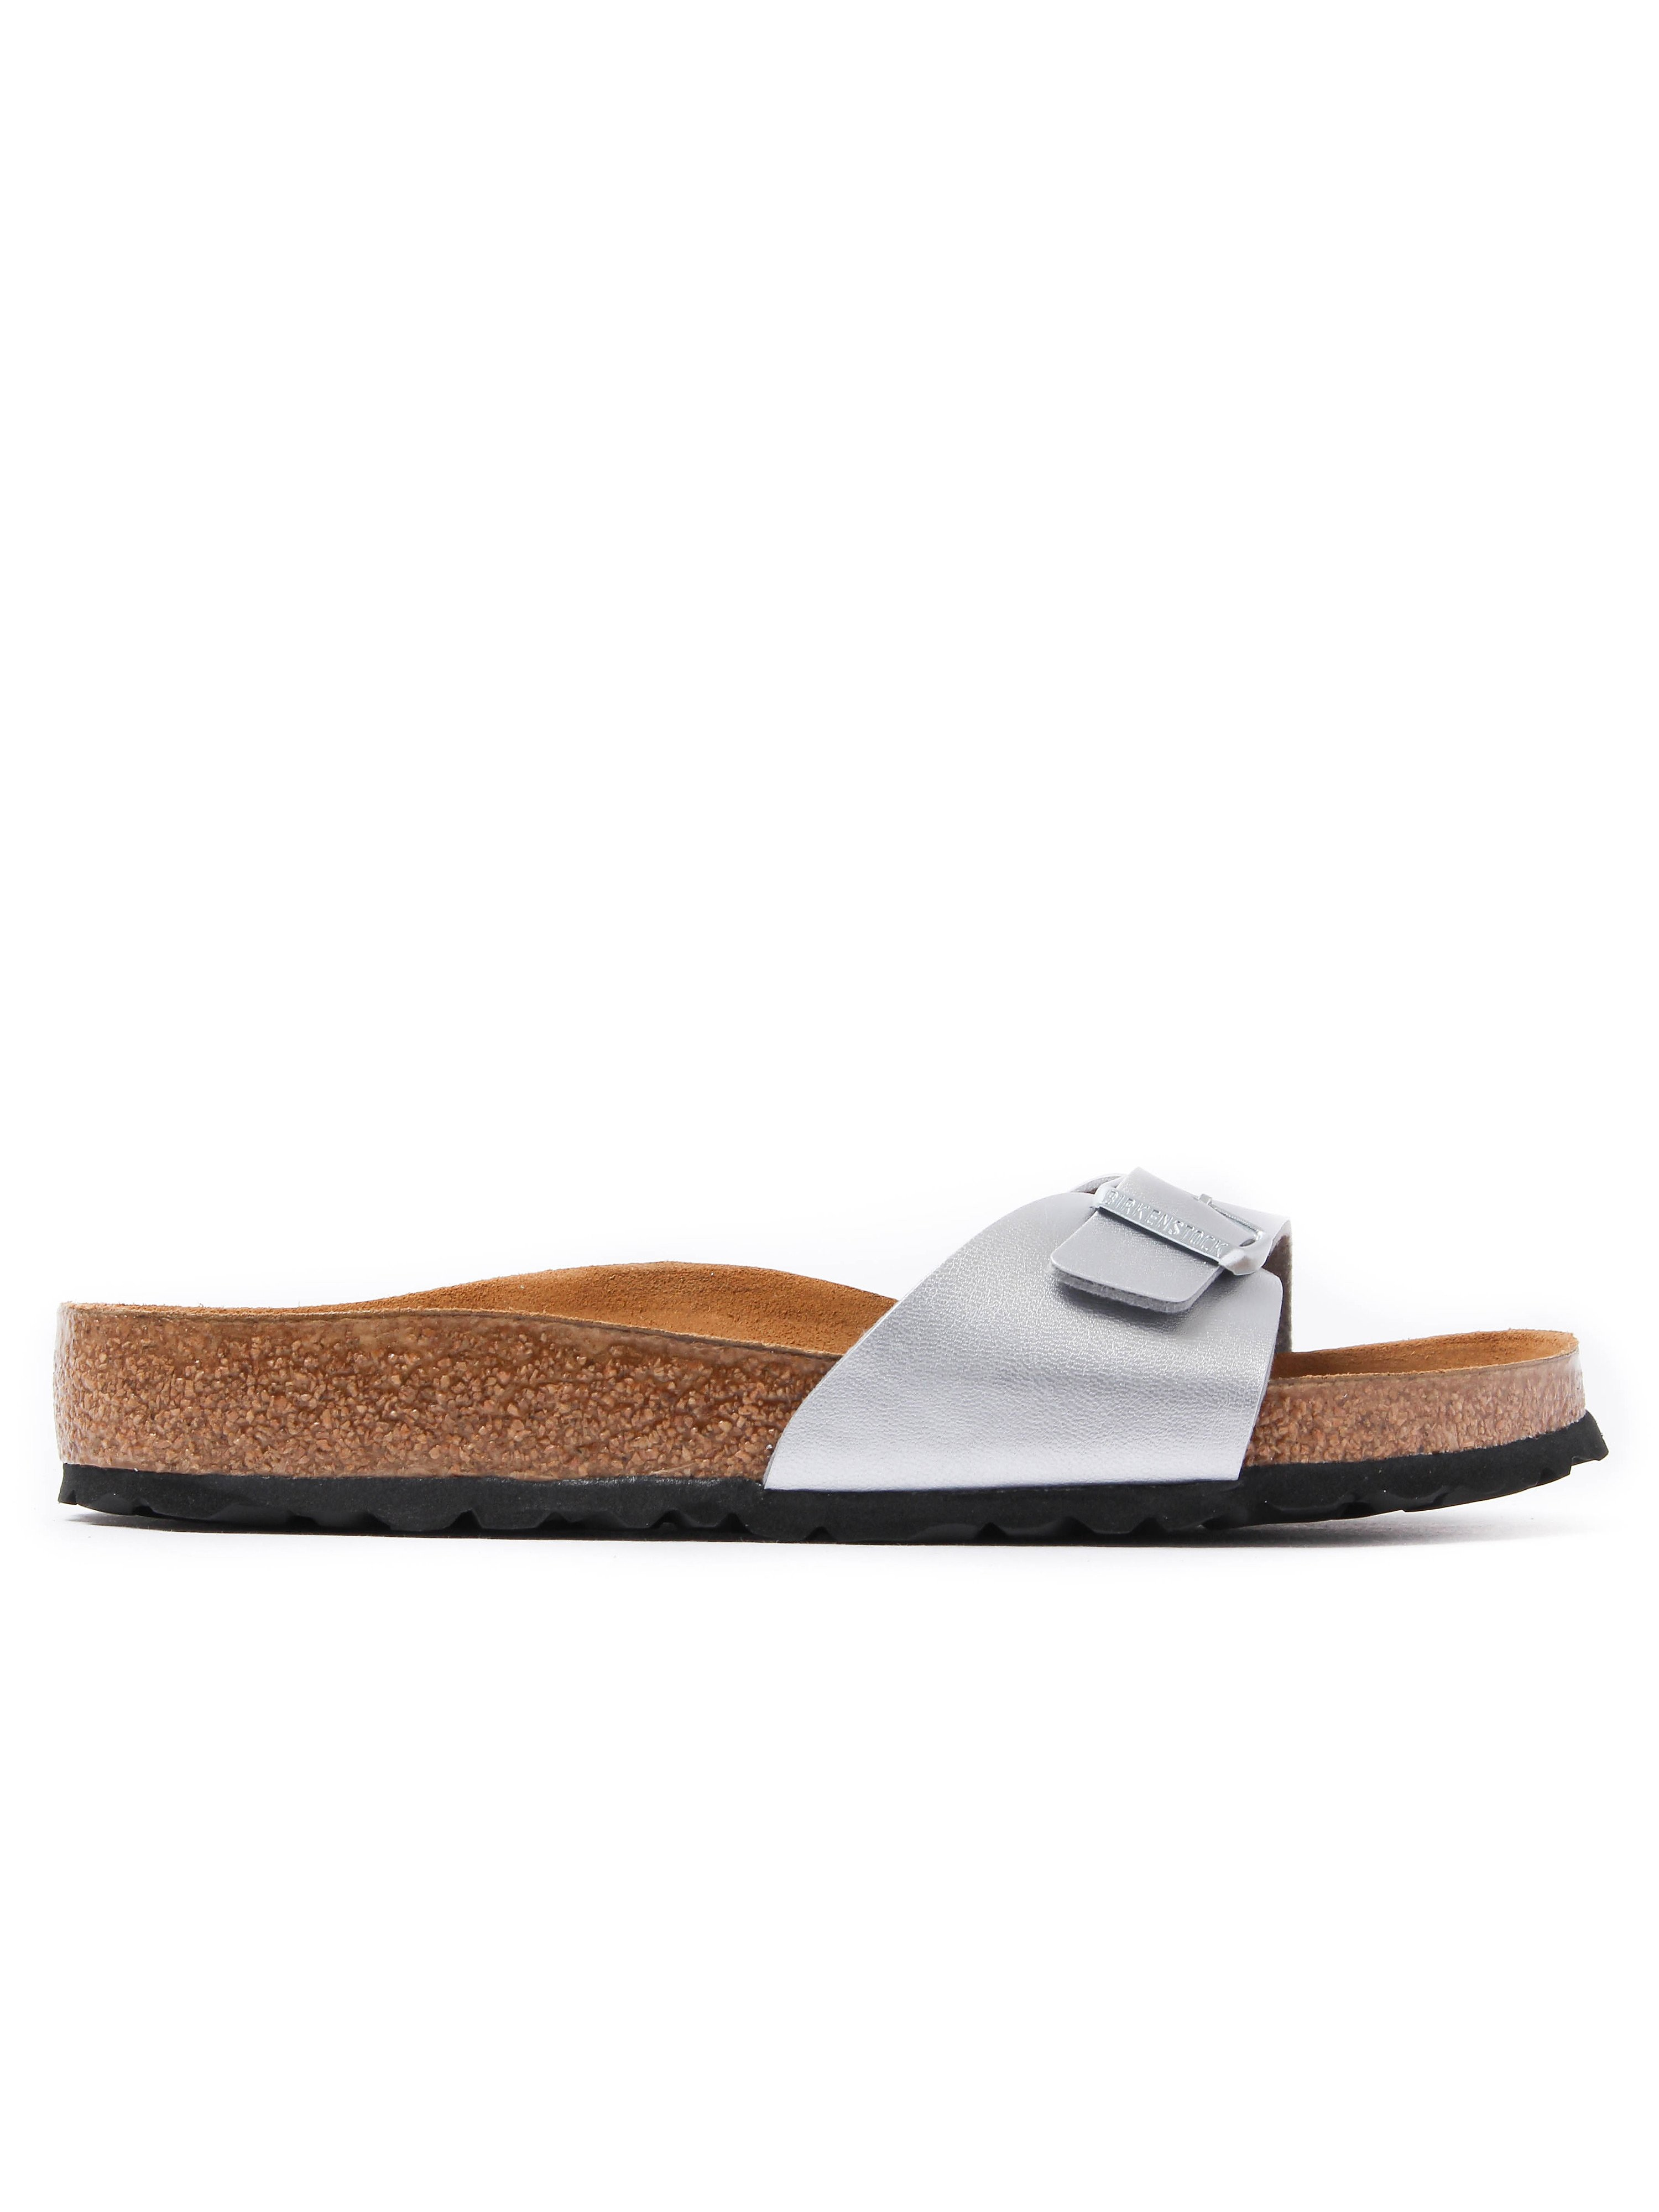 Birkenstock Women's Madrid Single Strap Sandals - Silver Leather